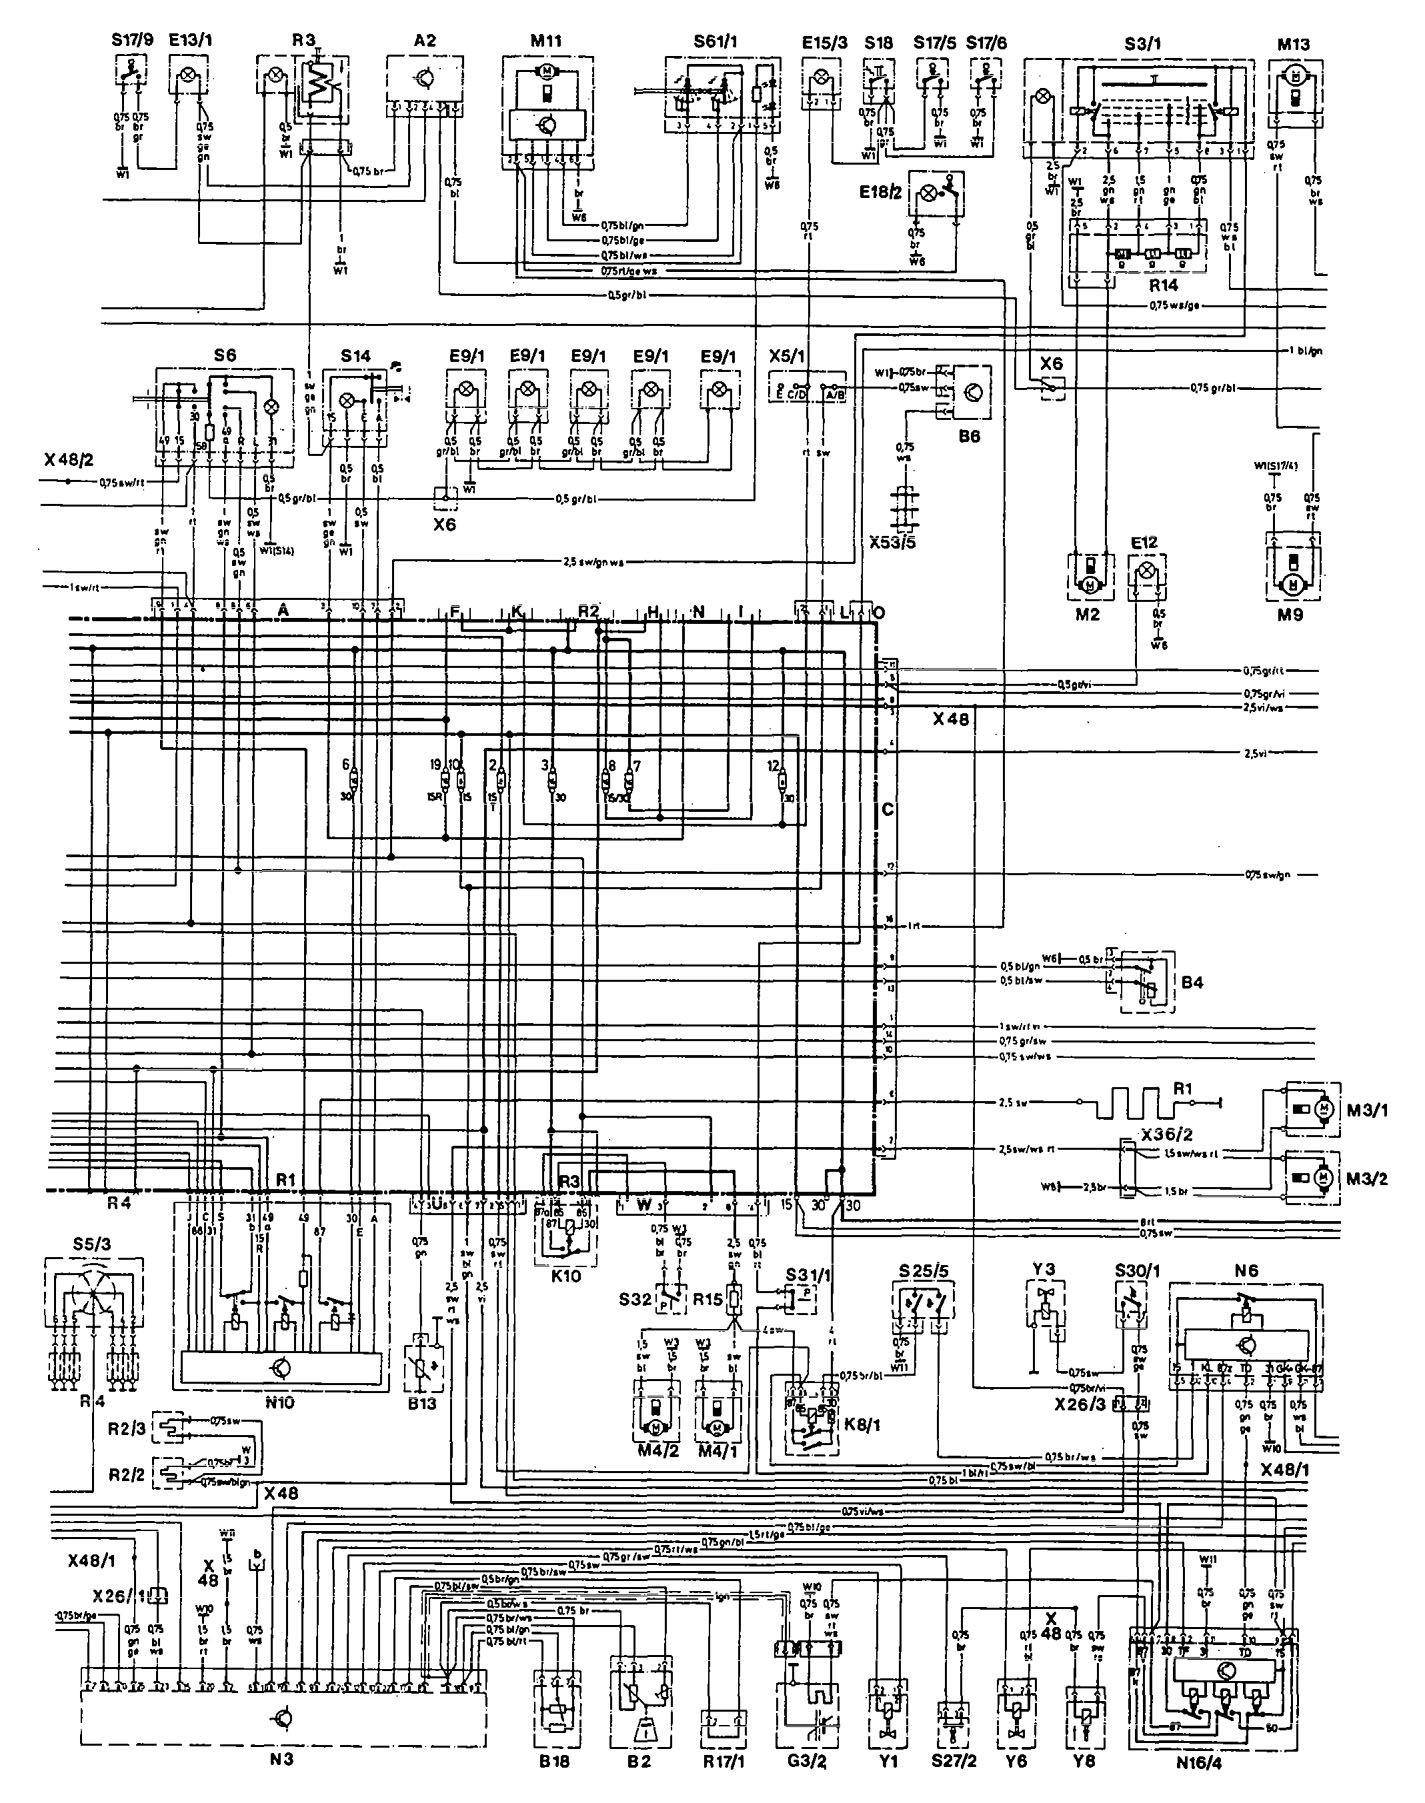 Mercedes 190E (1993) - wiring diagrams - cooling fans - Carknowledge.infoCarknowledge.info